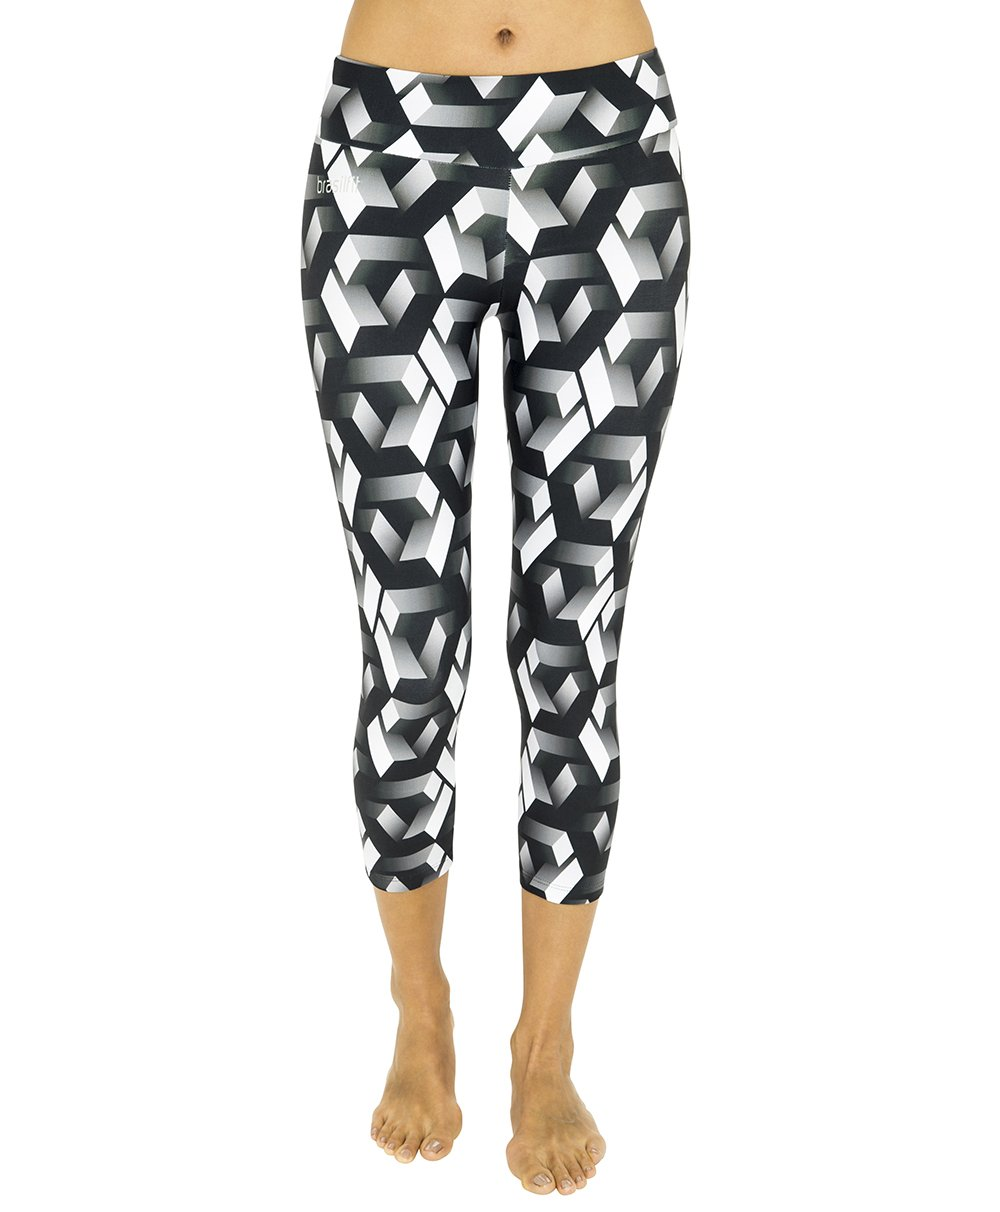 Side view product image for Brasilfit Labyrinth calf length activewear leggings.  Labyrinth leggings are part of our premium printed activewear collection that is focused on performance, high compression activewear with colourful prints.